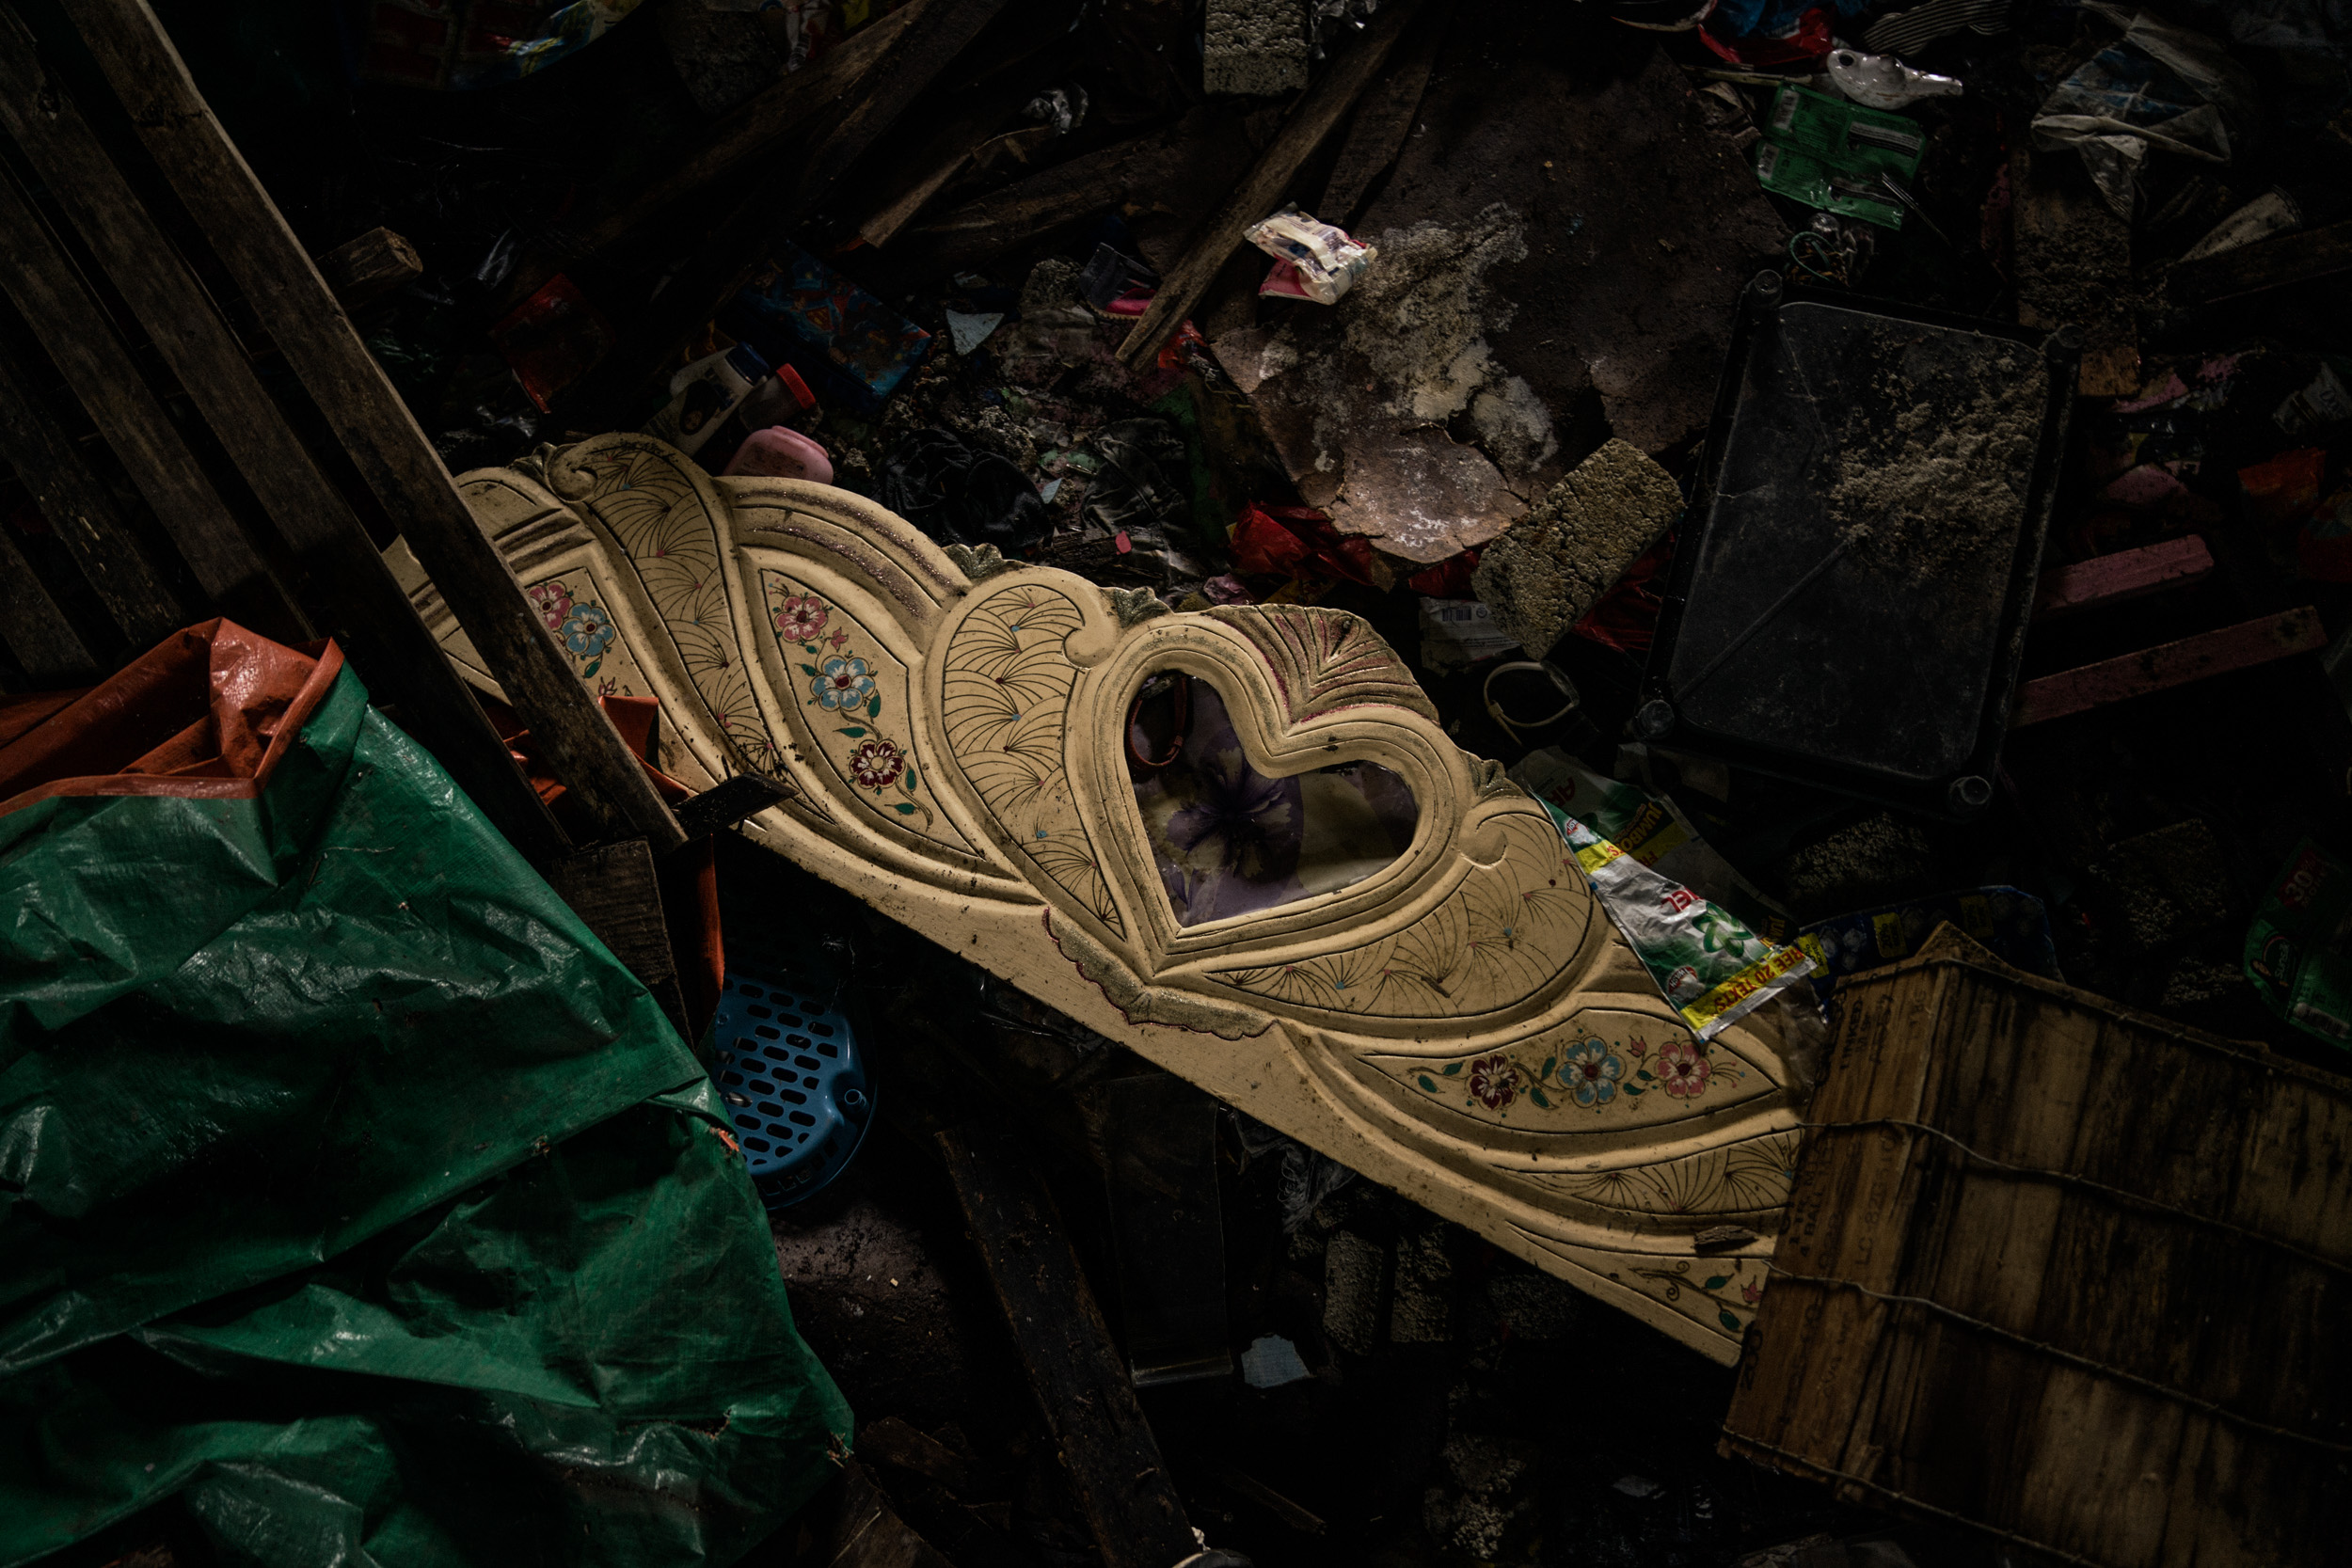 "MARAWI, PHILIPPINES. JANUARY 10. A headboard of a bed is seen in the rubble of the main battle area of the Marawi siege. It has been more than a year since the Philippine military declared the Muslim-majority city of Marawi ""liberated"" from ISIS-linked militants. But the ravaged city is still waiting for billions in promised infrastructure and aid to arrive. Over a hundred thousand people remain displaced, and analysts say that militants are returning to the area, preying on growing frustration with the government in maintaining stability. (Hannah Reyes Morales for The Washington Post)"